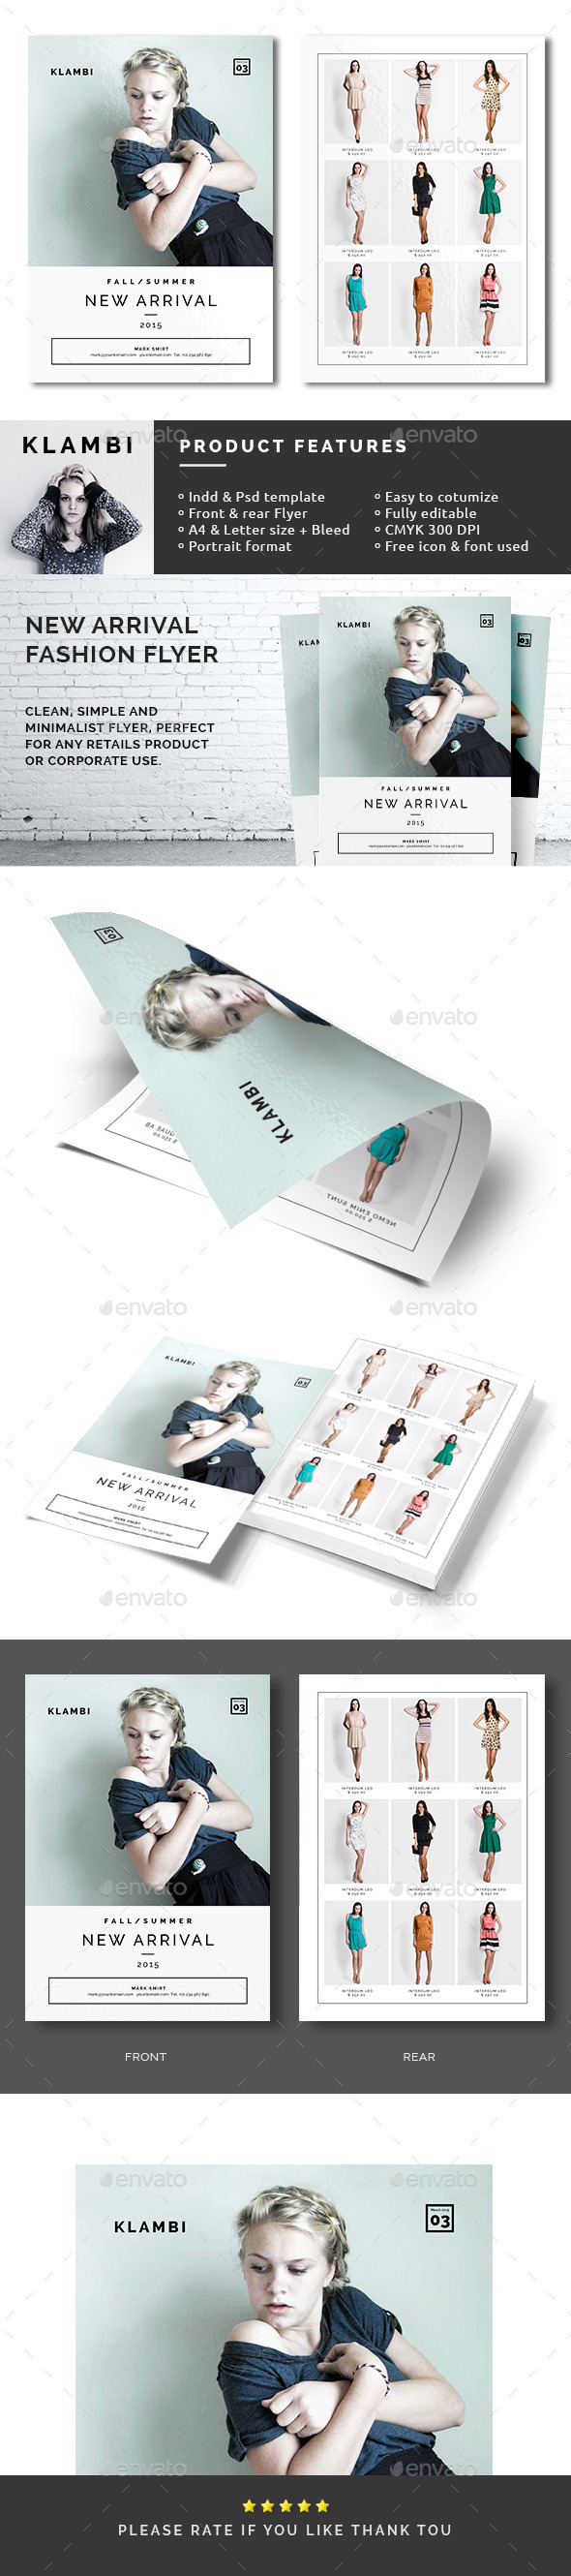 New Arrival Fashion Flyer - Commerce Flyers